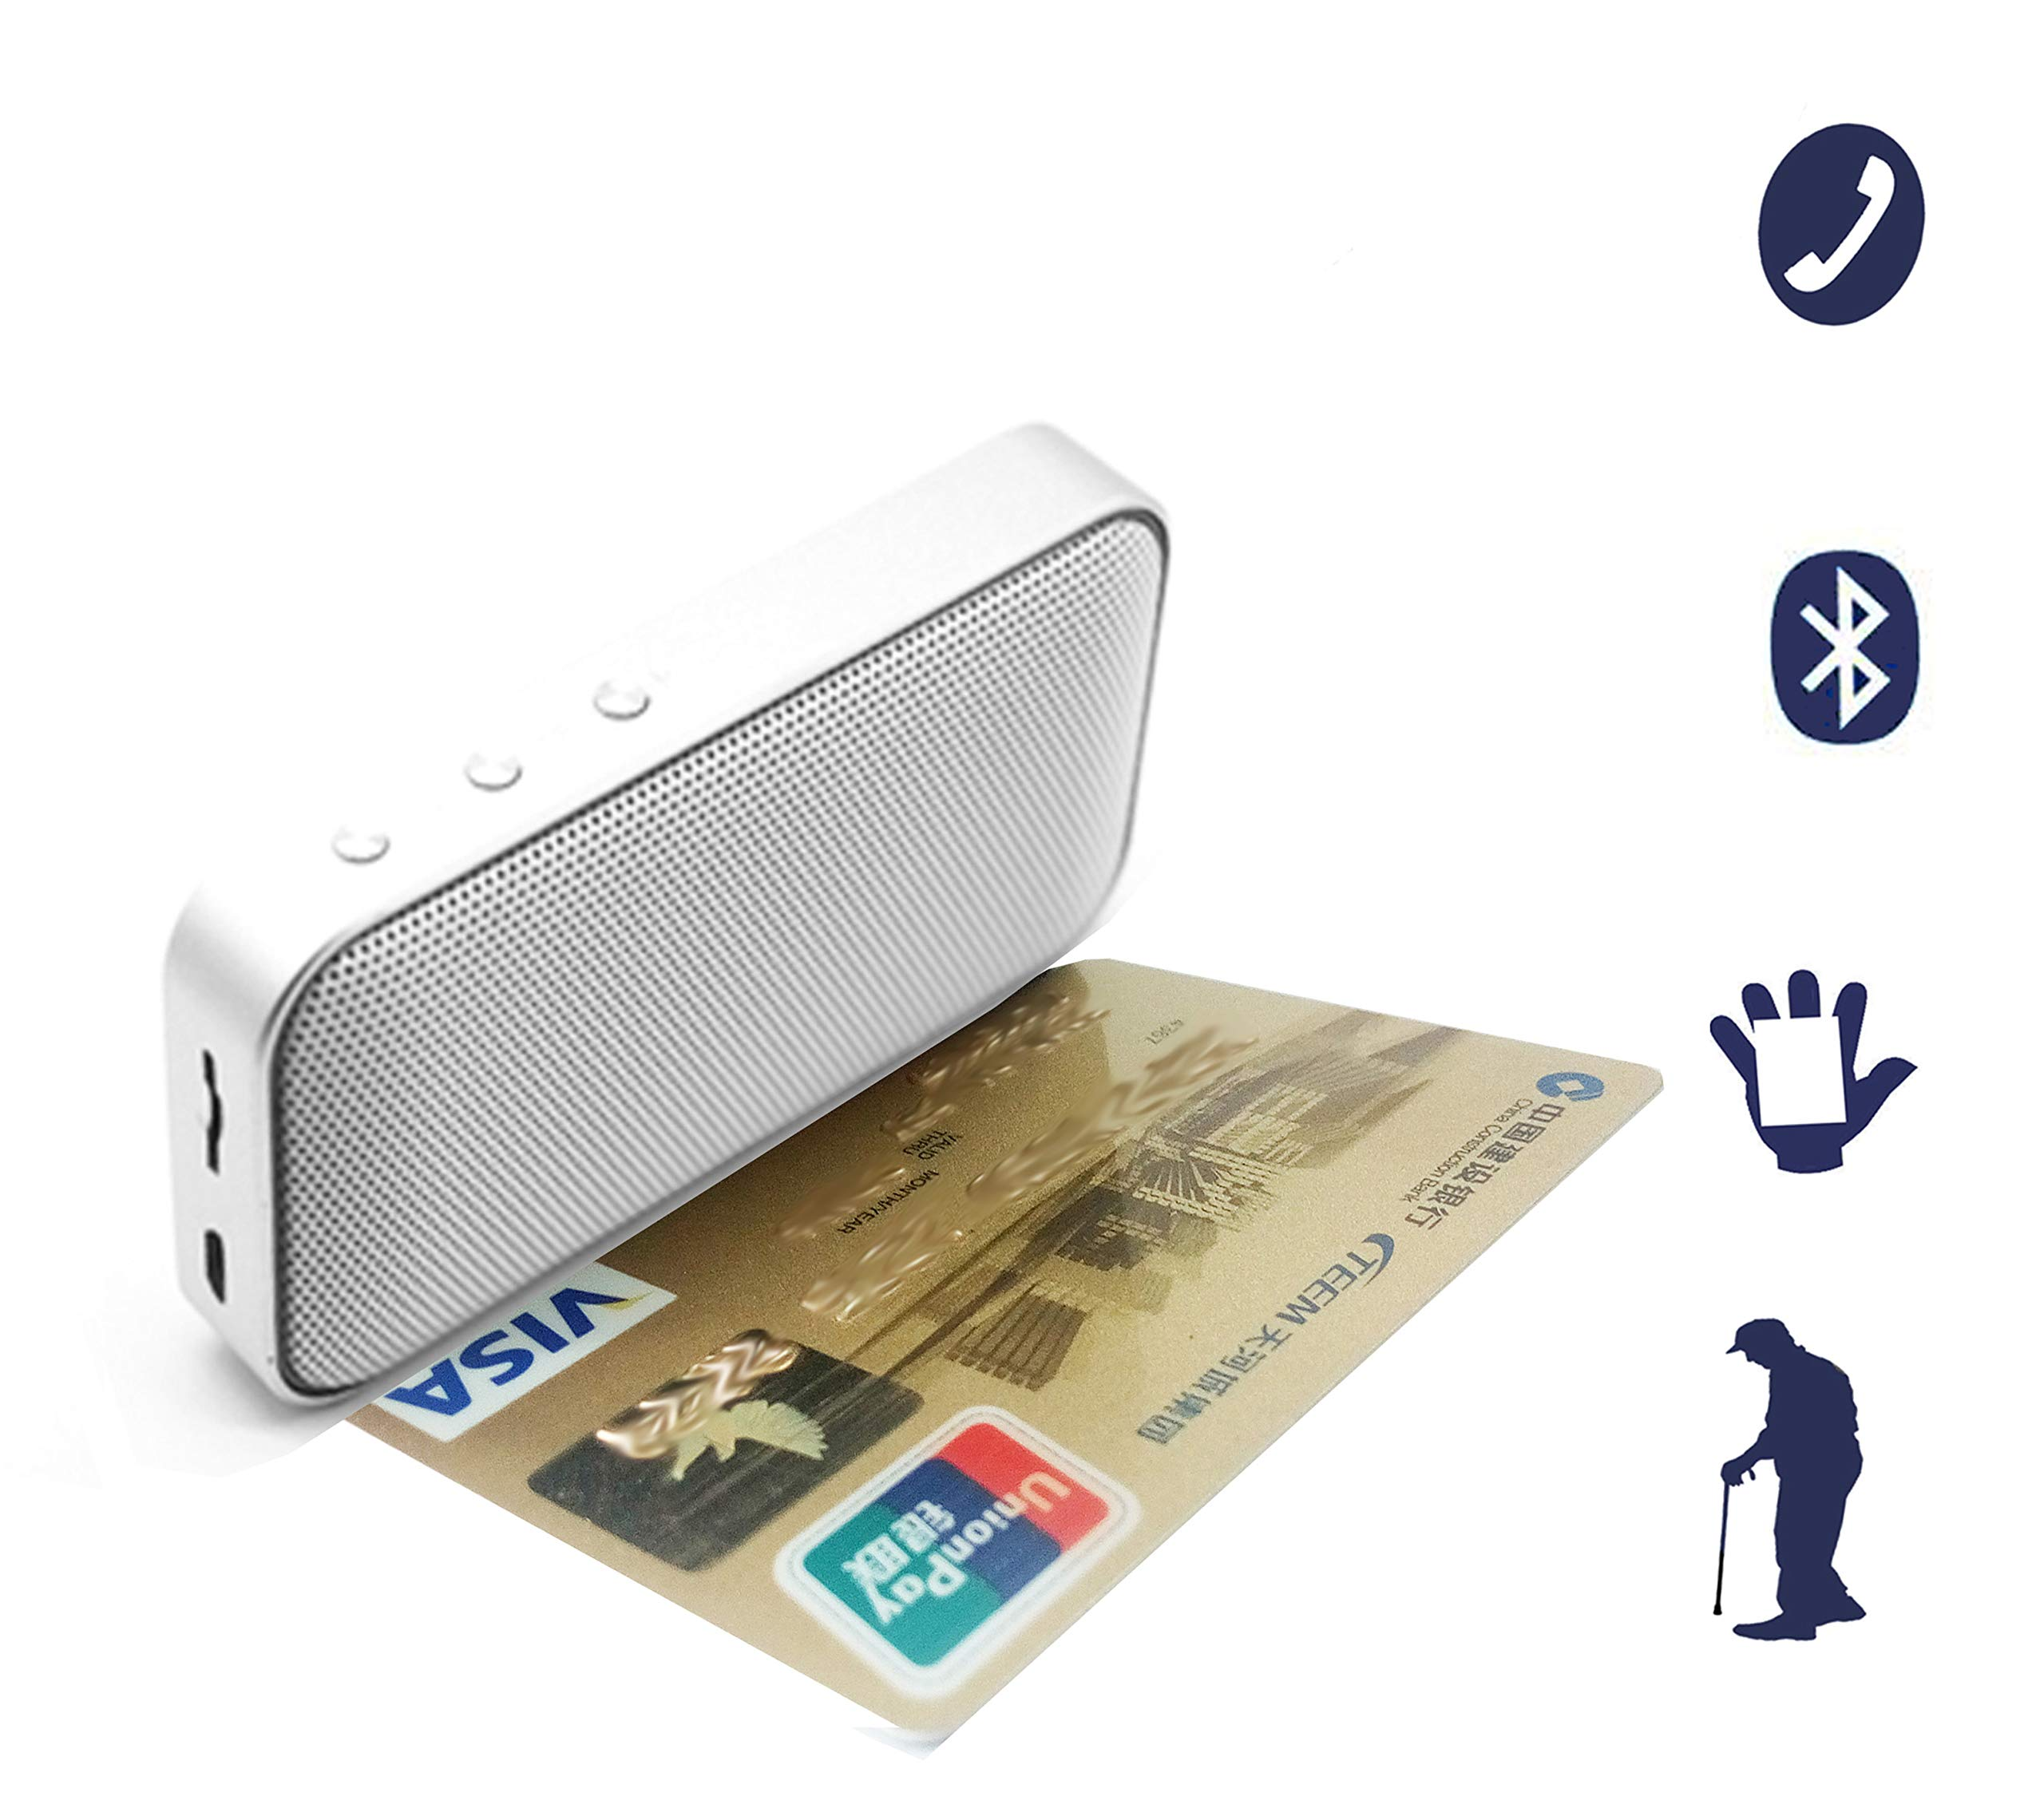 A-FUN Cell Phone Amplifier Sound and answering Calls Wearable (Pure White) by A-FUN